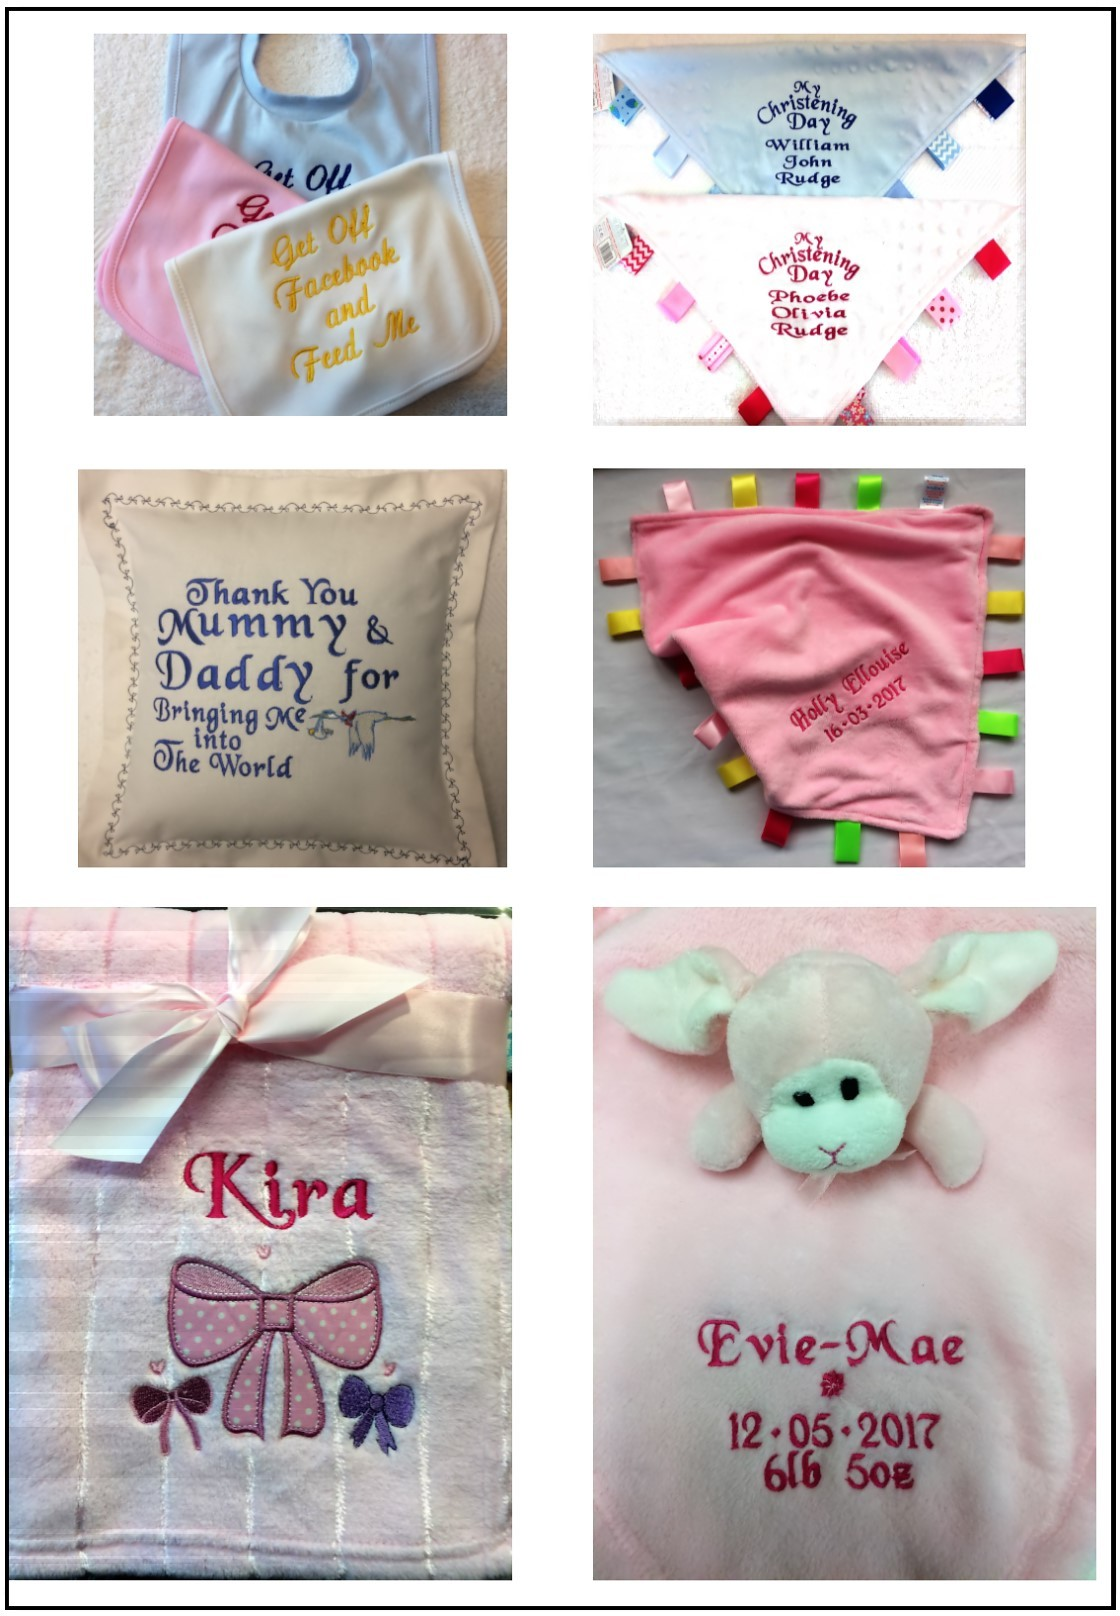 Embroidery - Kidz Baby Shop